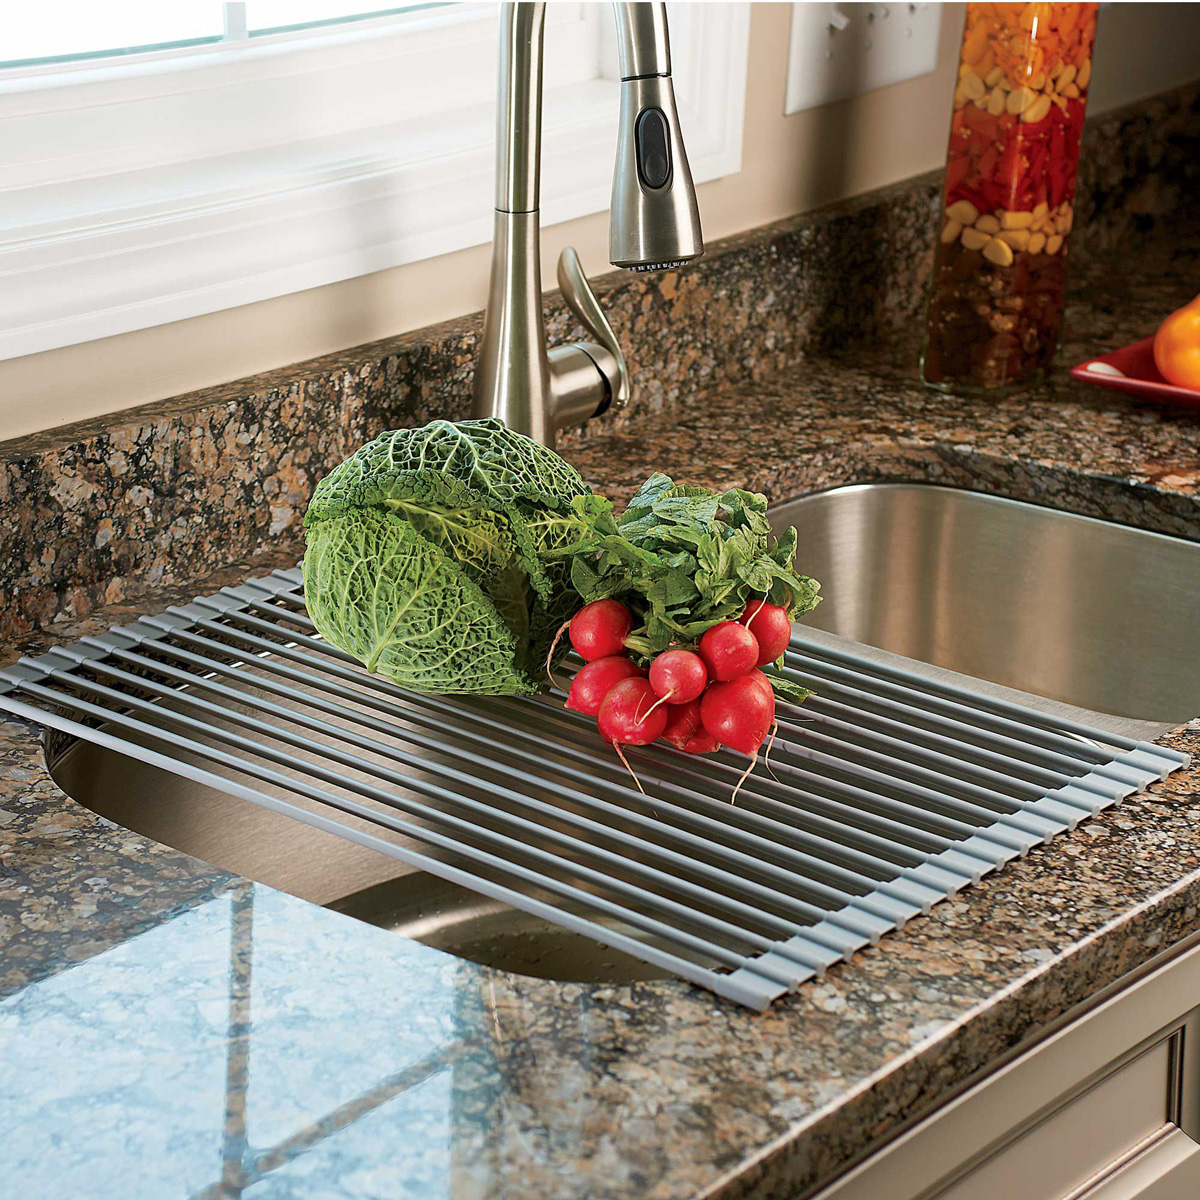 Kitchen Sink Drain Rack Over the sink roll up drying rack colander the green head over the sink roll up drying rack colander workwithnaturefo